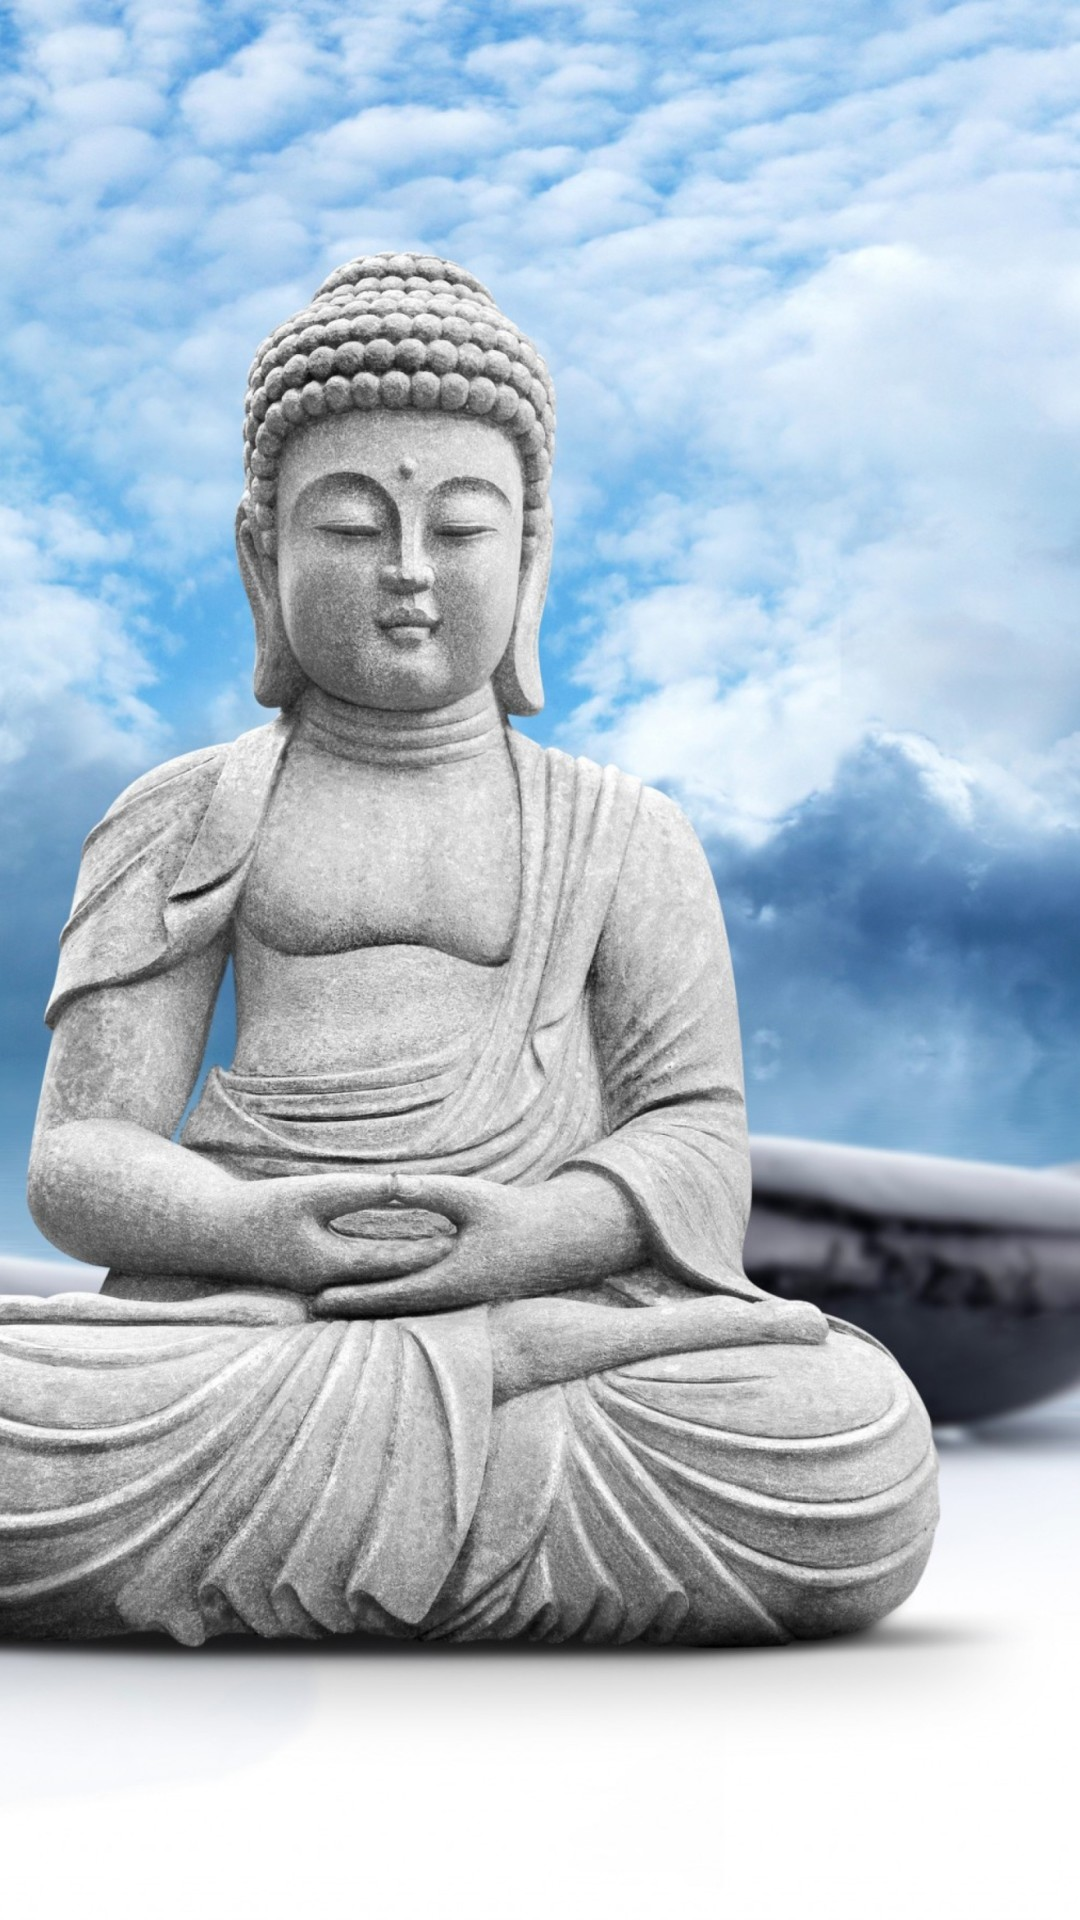 2020 Other   Images: Buddha Iphone Wallpaper